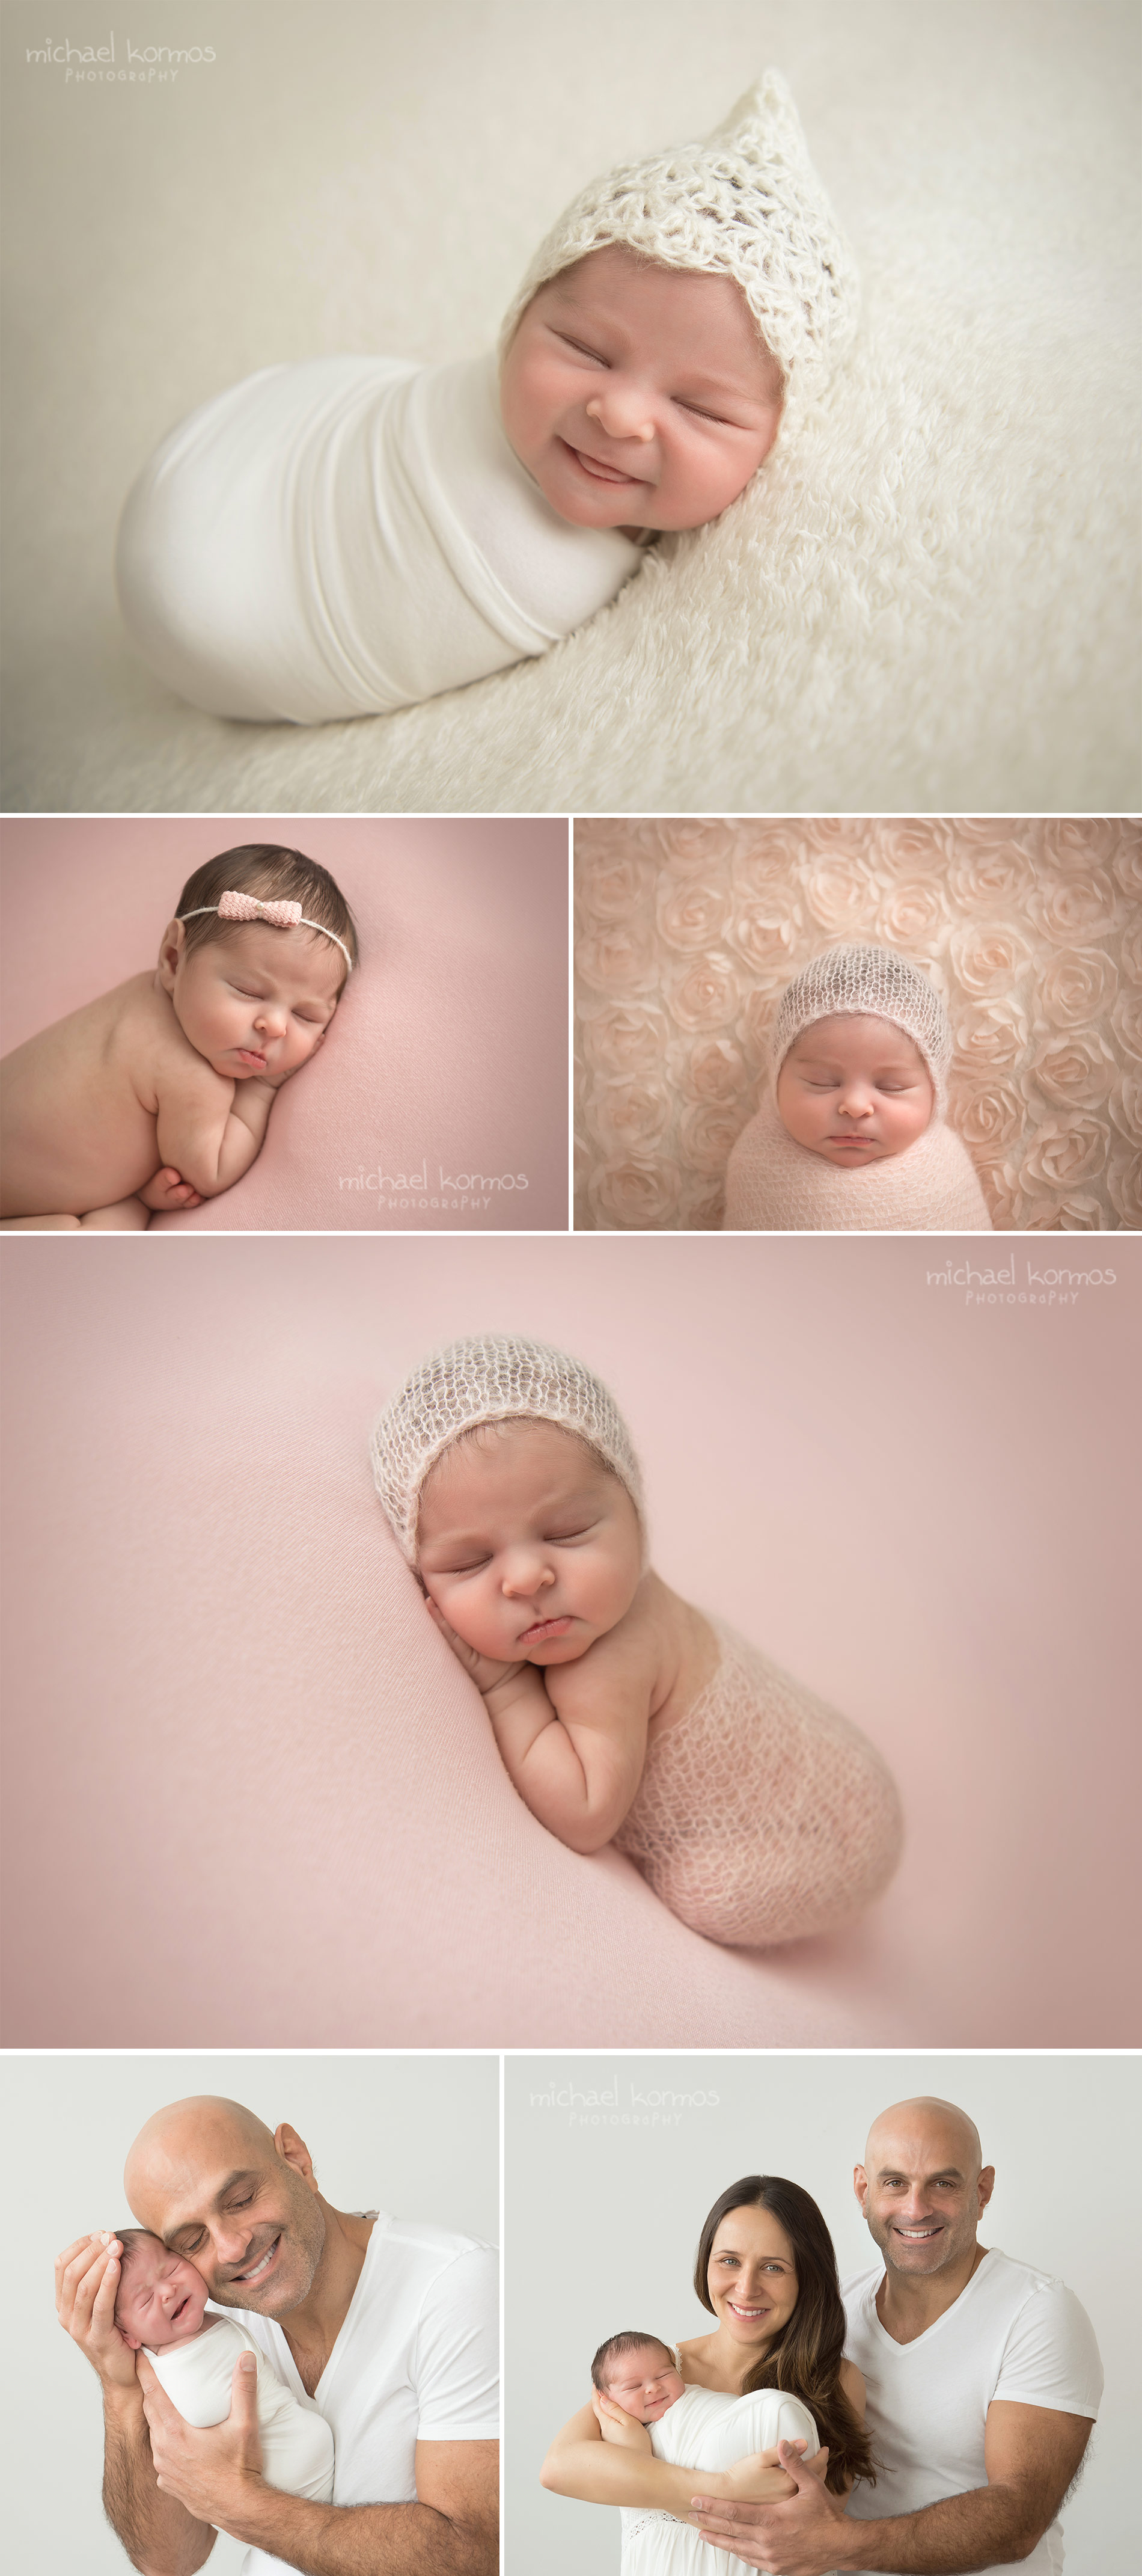 manhattan nyc newborn photographer home